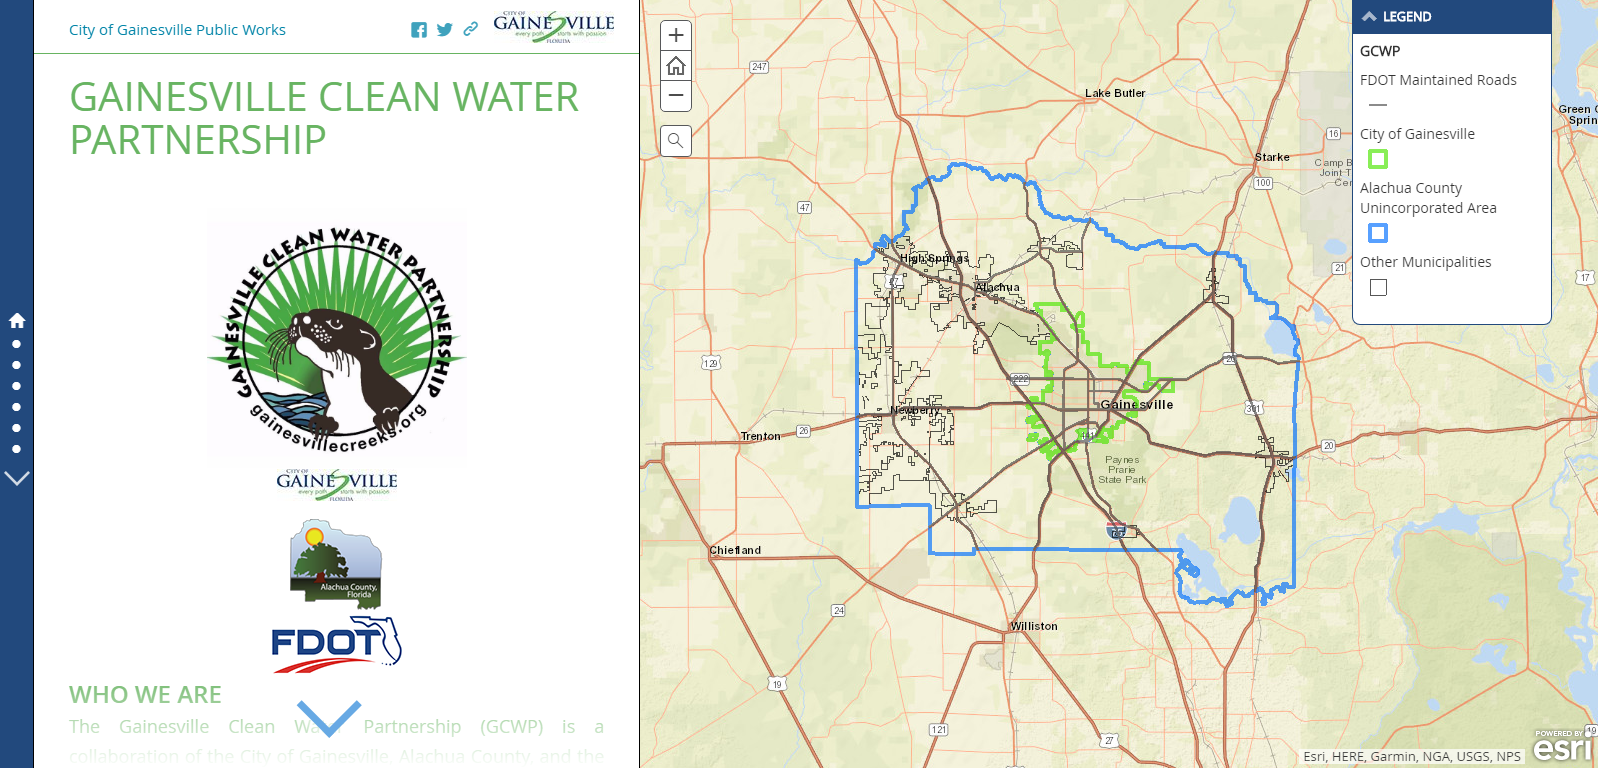 Gainesville Clean Water Partnership Story Map For Public Use image